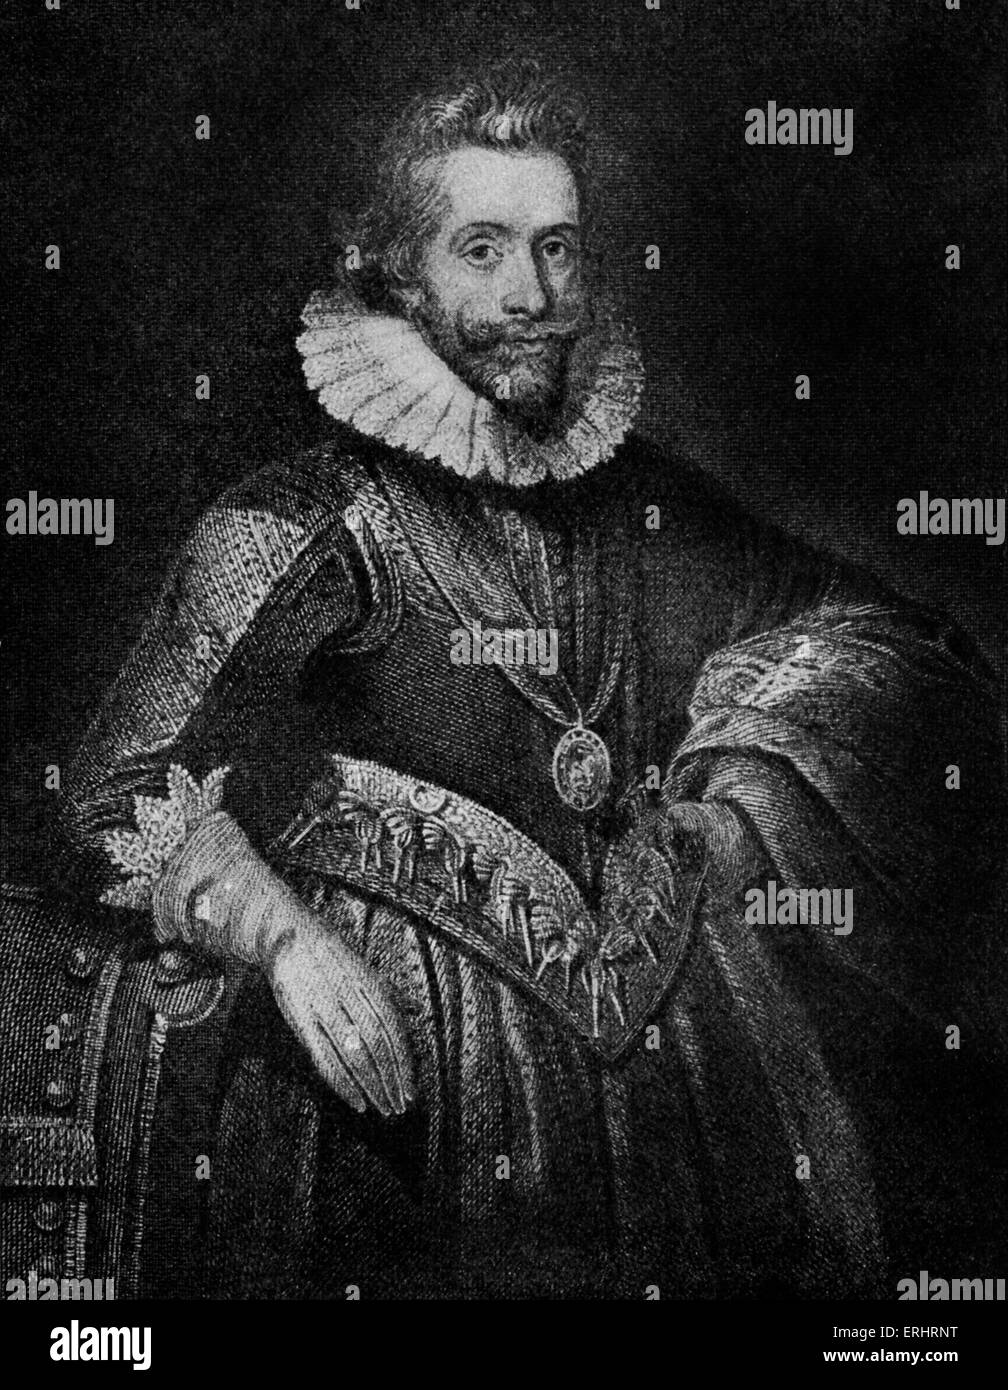 Henry Wriothesley - Third earl of Southampton and William Shakespeare's patron. HW: 1573-1624. WS: English poet - Stock Image